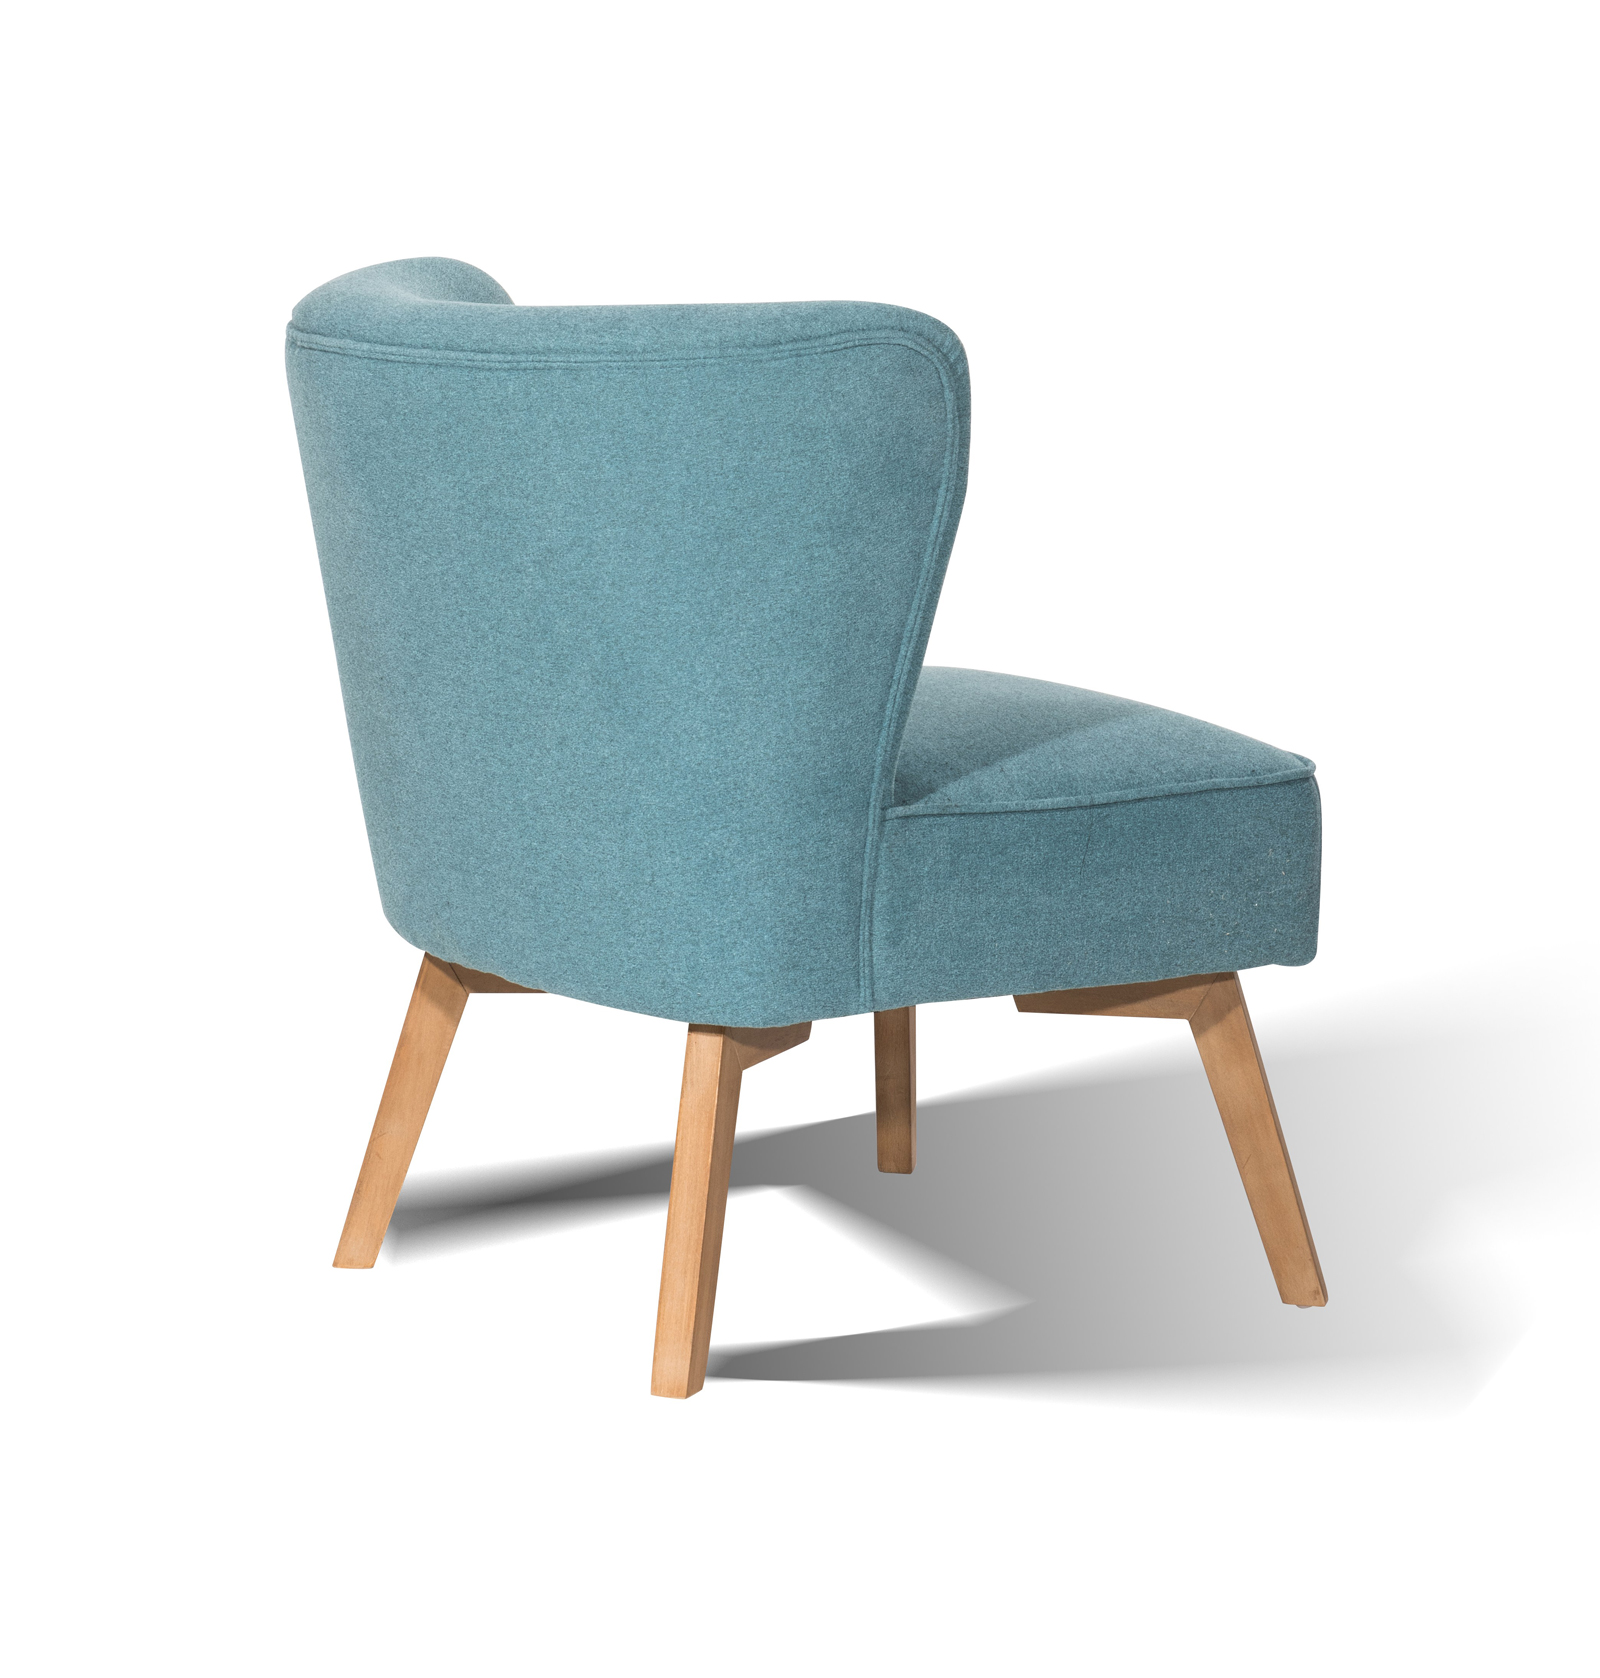 Scandi Sessel Sam Design Ohrensessel 4736 15 Blau Hevea Sit